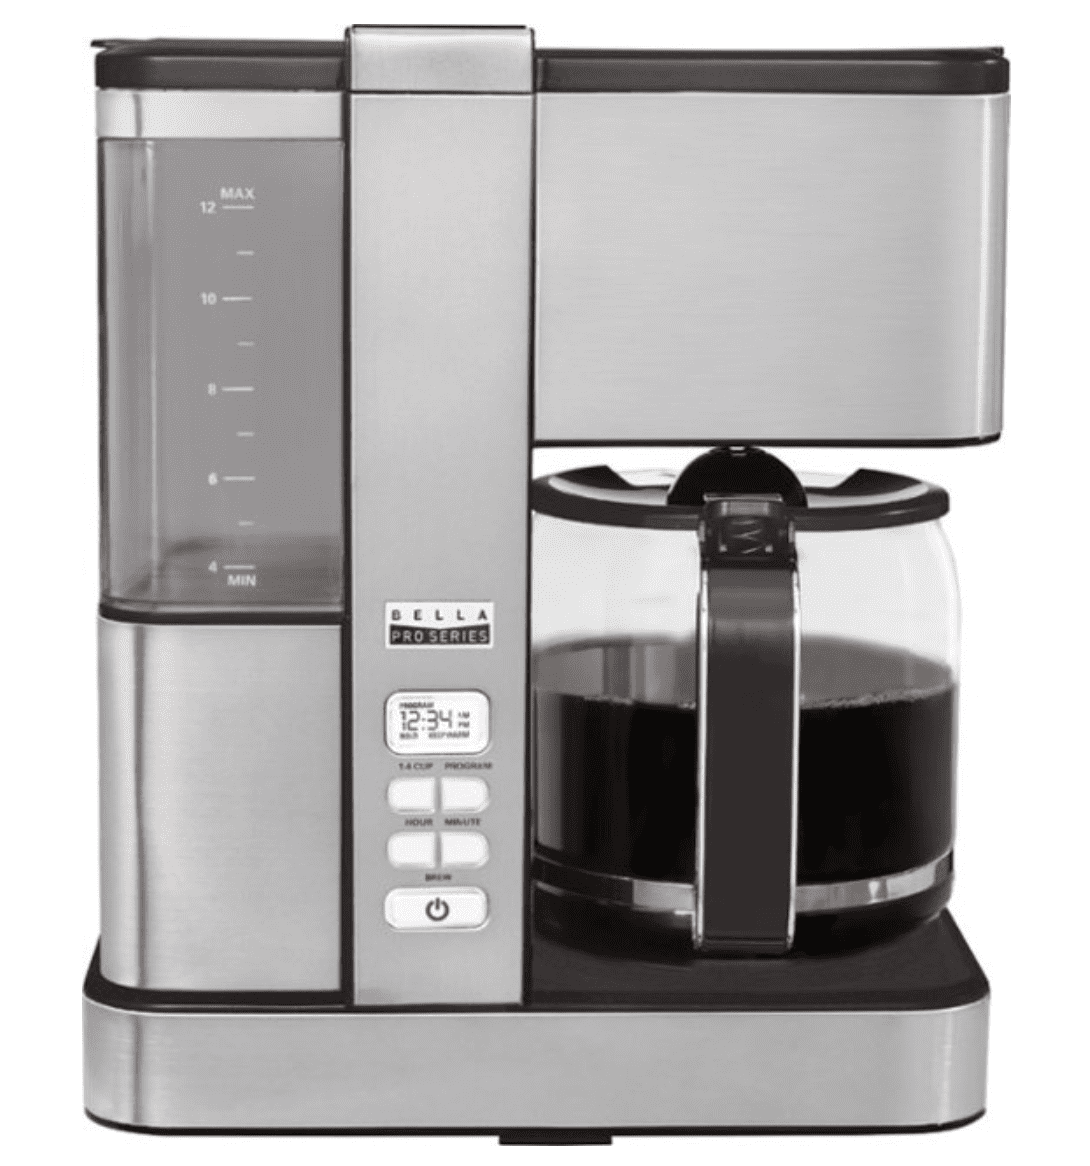 Best Buy: Bella Pro Series 12-Cup Coffer Maker for .99